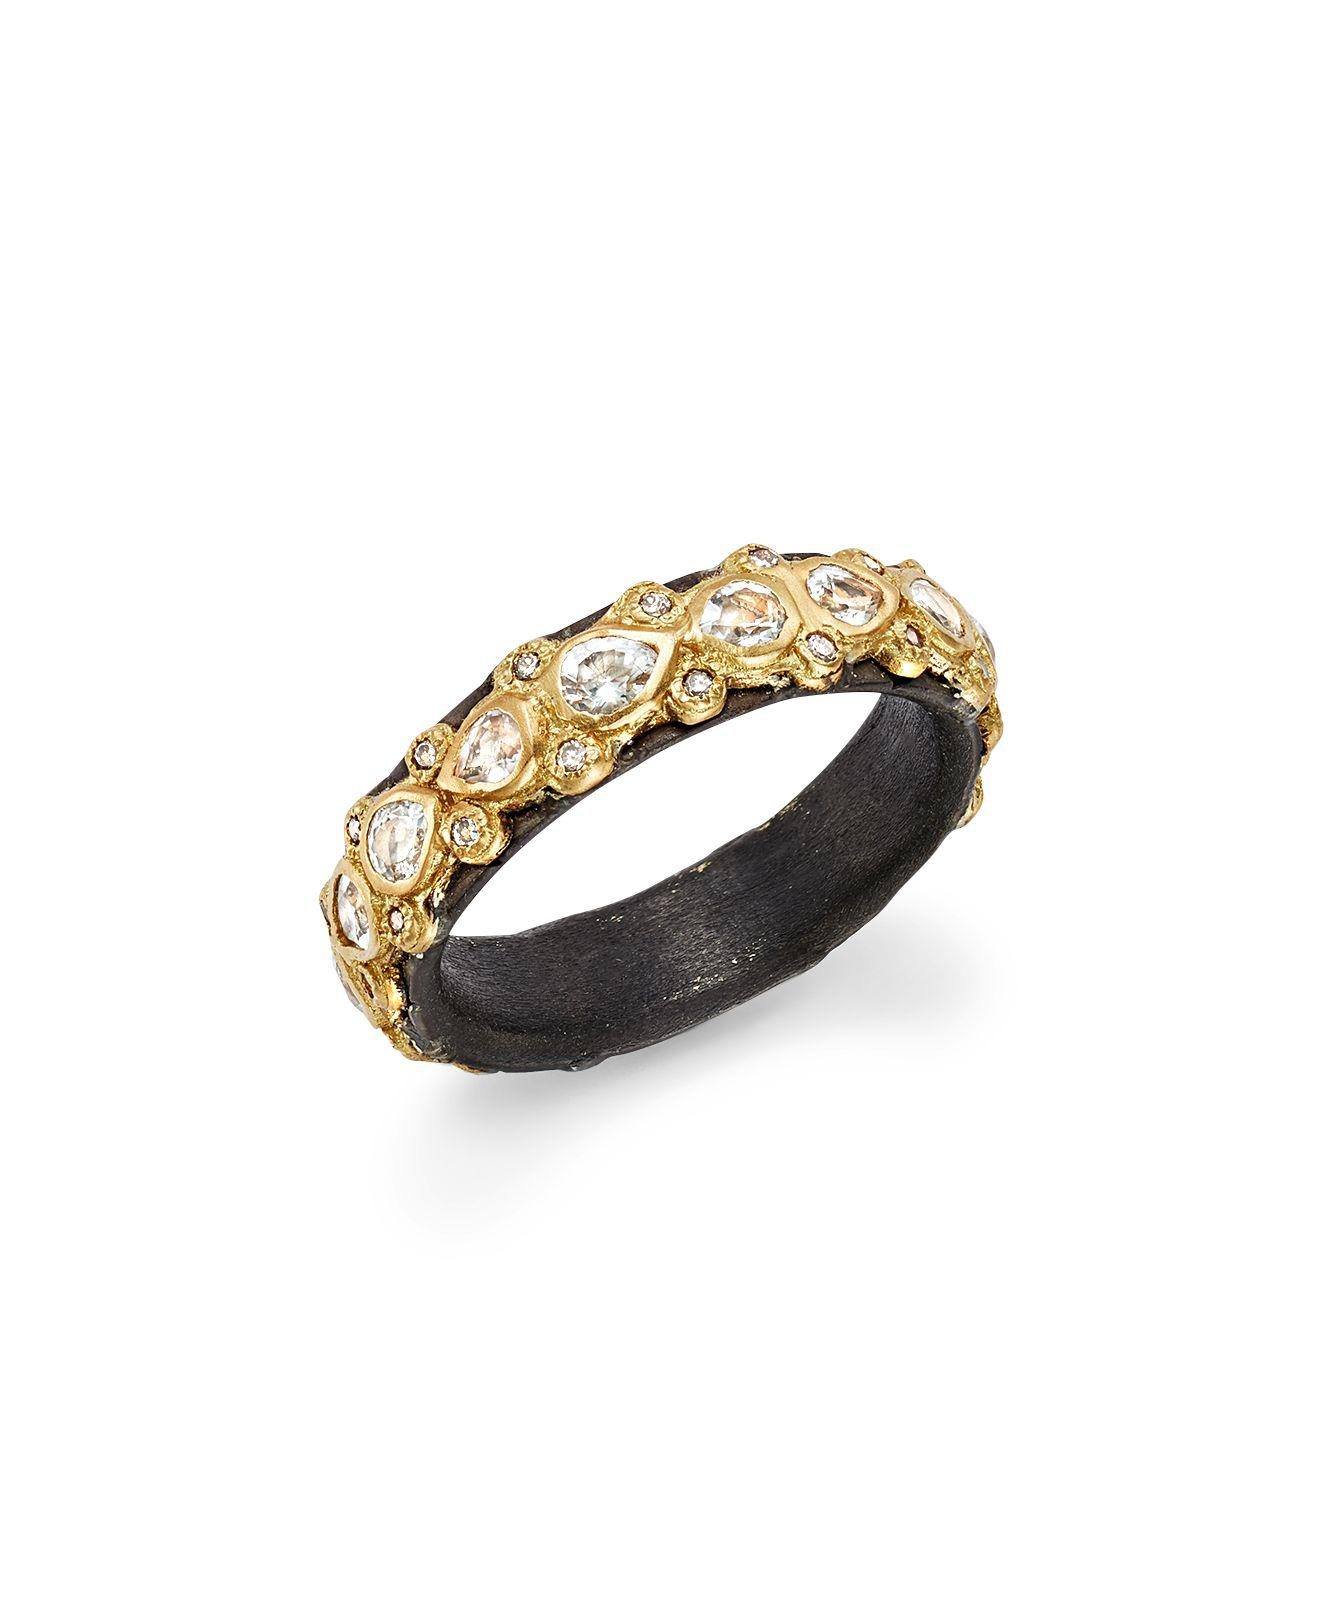 Armenta New World Blackened Scalloped Ring with Diamonds & Black Sapphires 1sibqhw